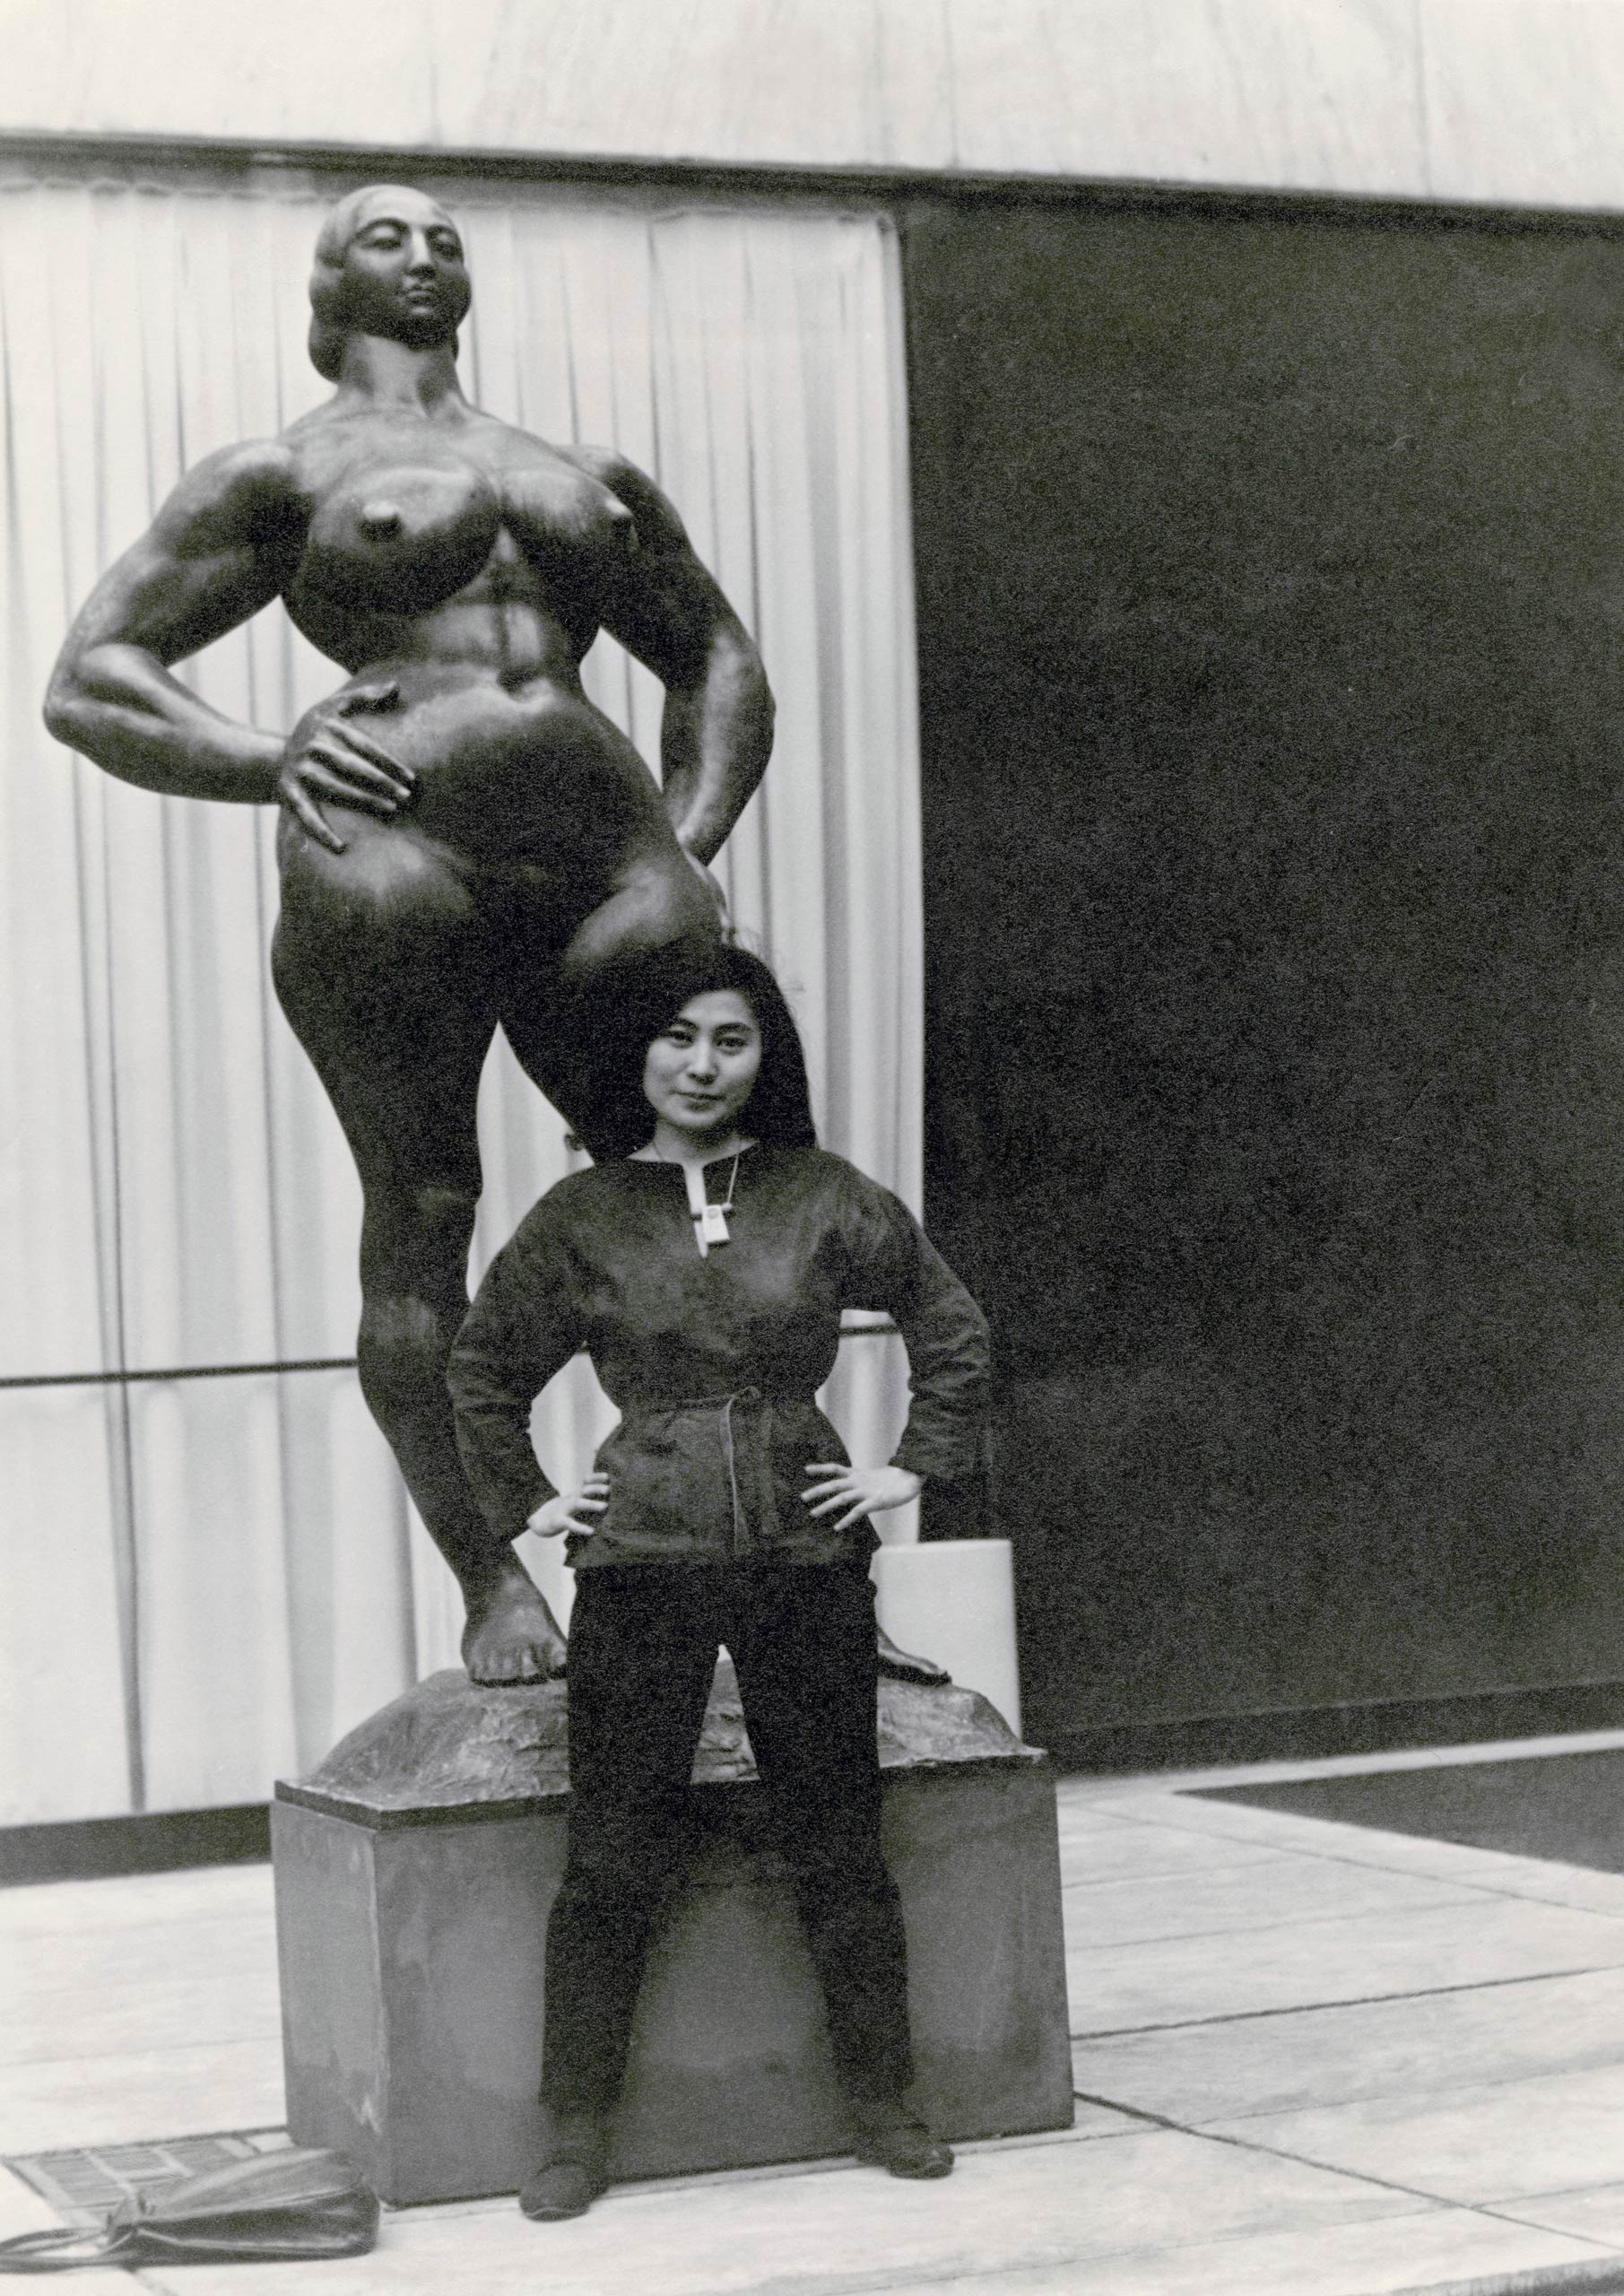 Yoko Ono stands next to <i>Standing Woman</i>, 1932, by Gaston Lachaise at The Museum of Modern Art Sculpture Garden in New York, circa 1960–61.